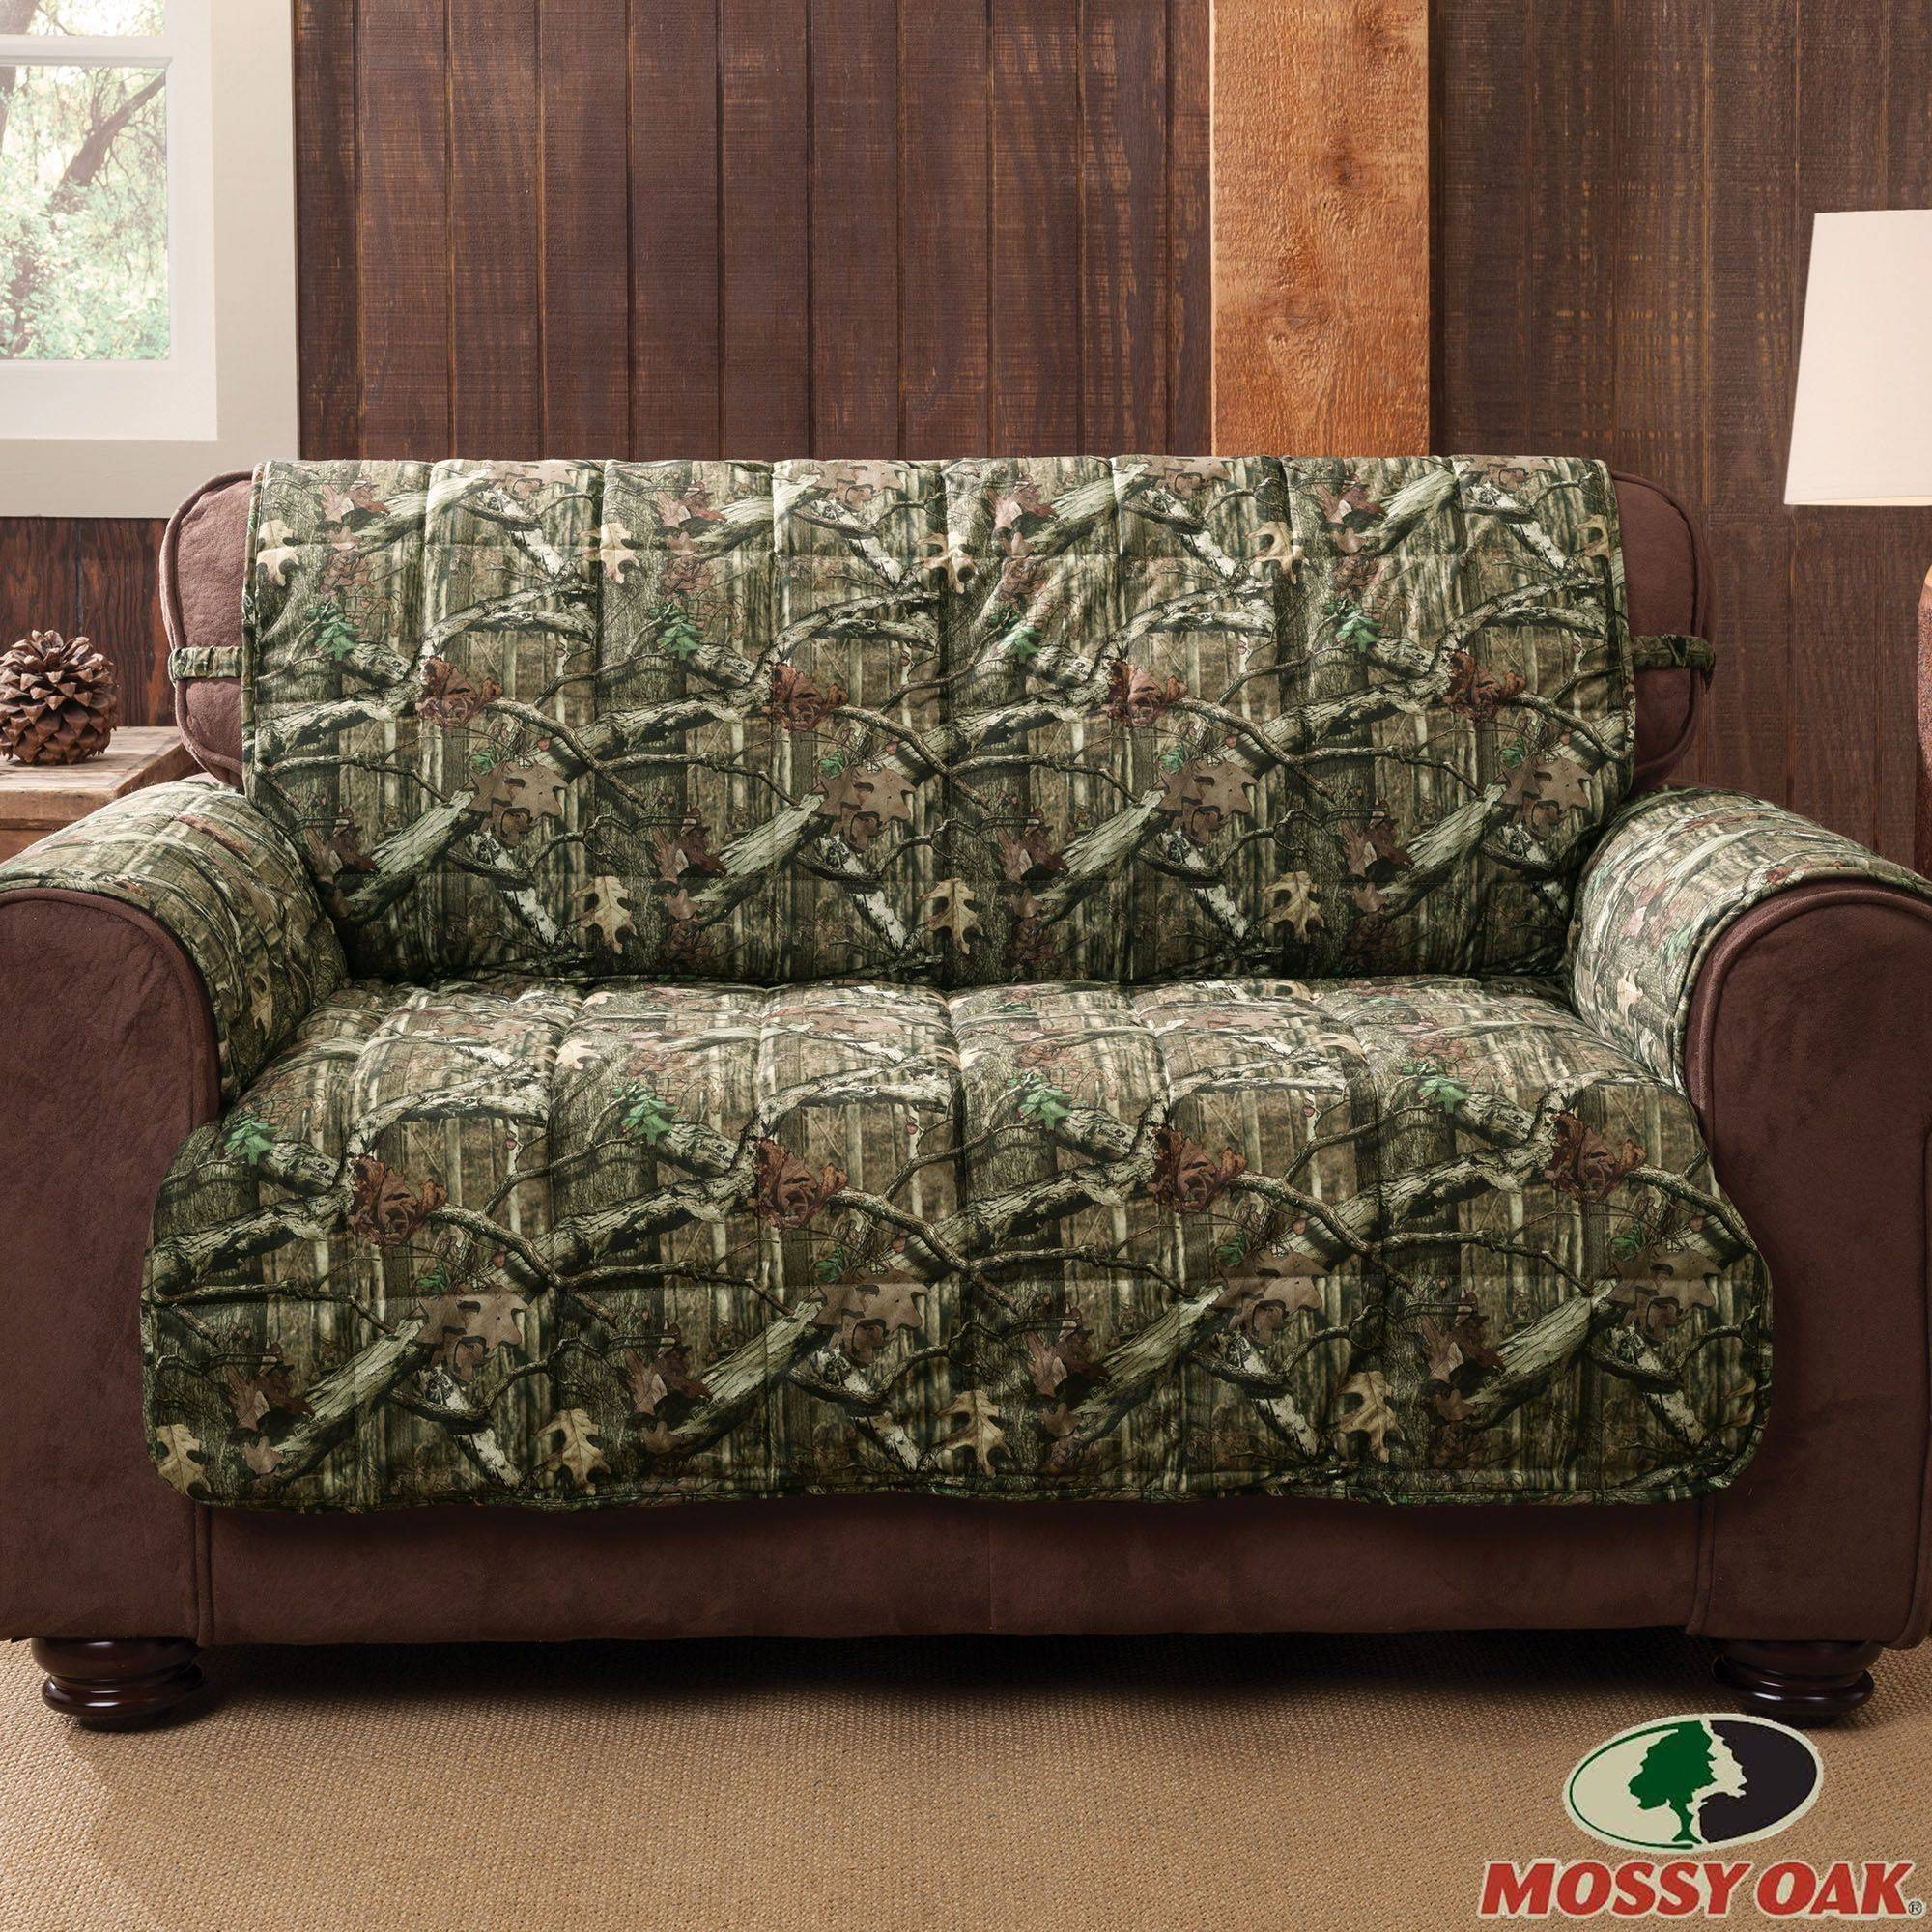 Mossy Oak Break Up Infinity Camo Furniture Protectors for Camo Reclining Sofas (Image 14 of 15)